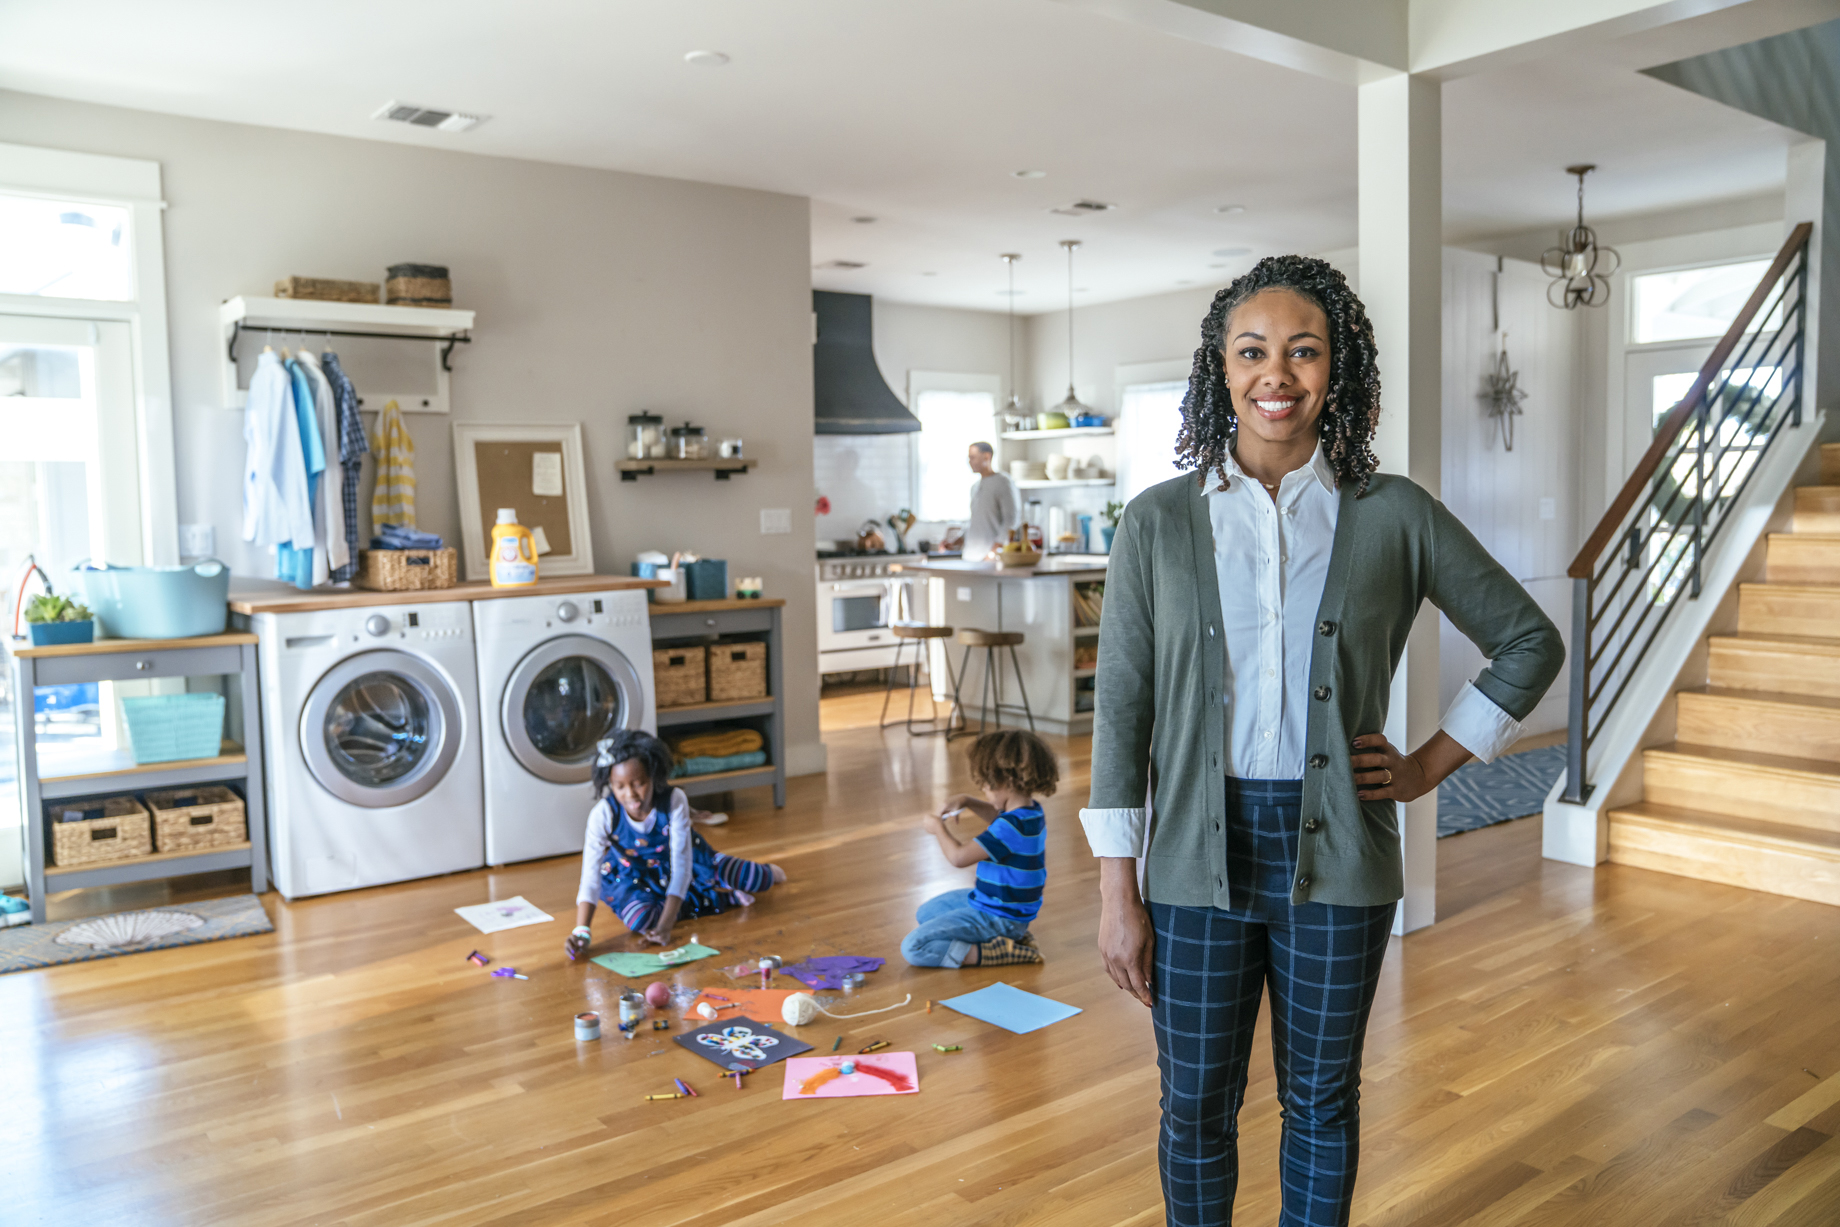 Portrait of a mother with two kids making art in the background shot by Inti St. Clair for Arm and Hammer